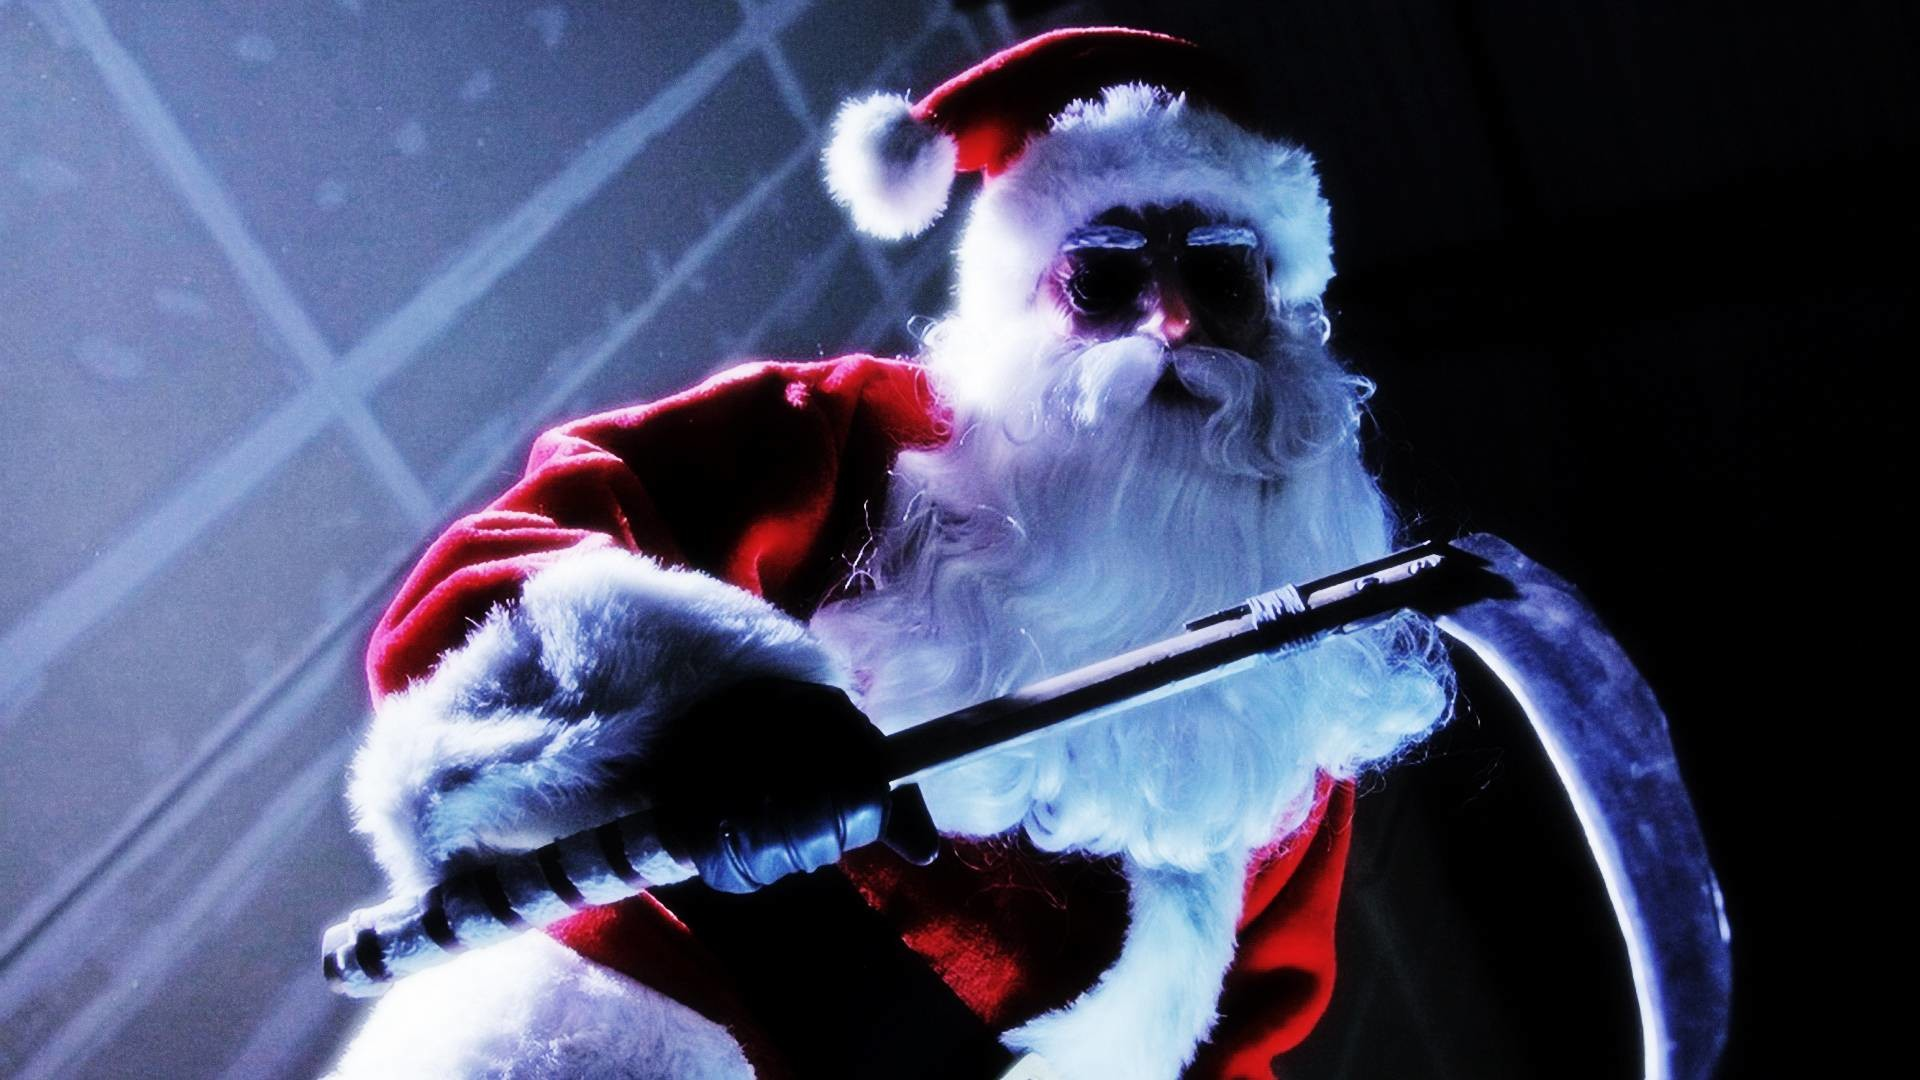 Res: 1920x1080, Blanc Creative Top 5 Greatest Christmas Horror S Ever